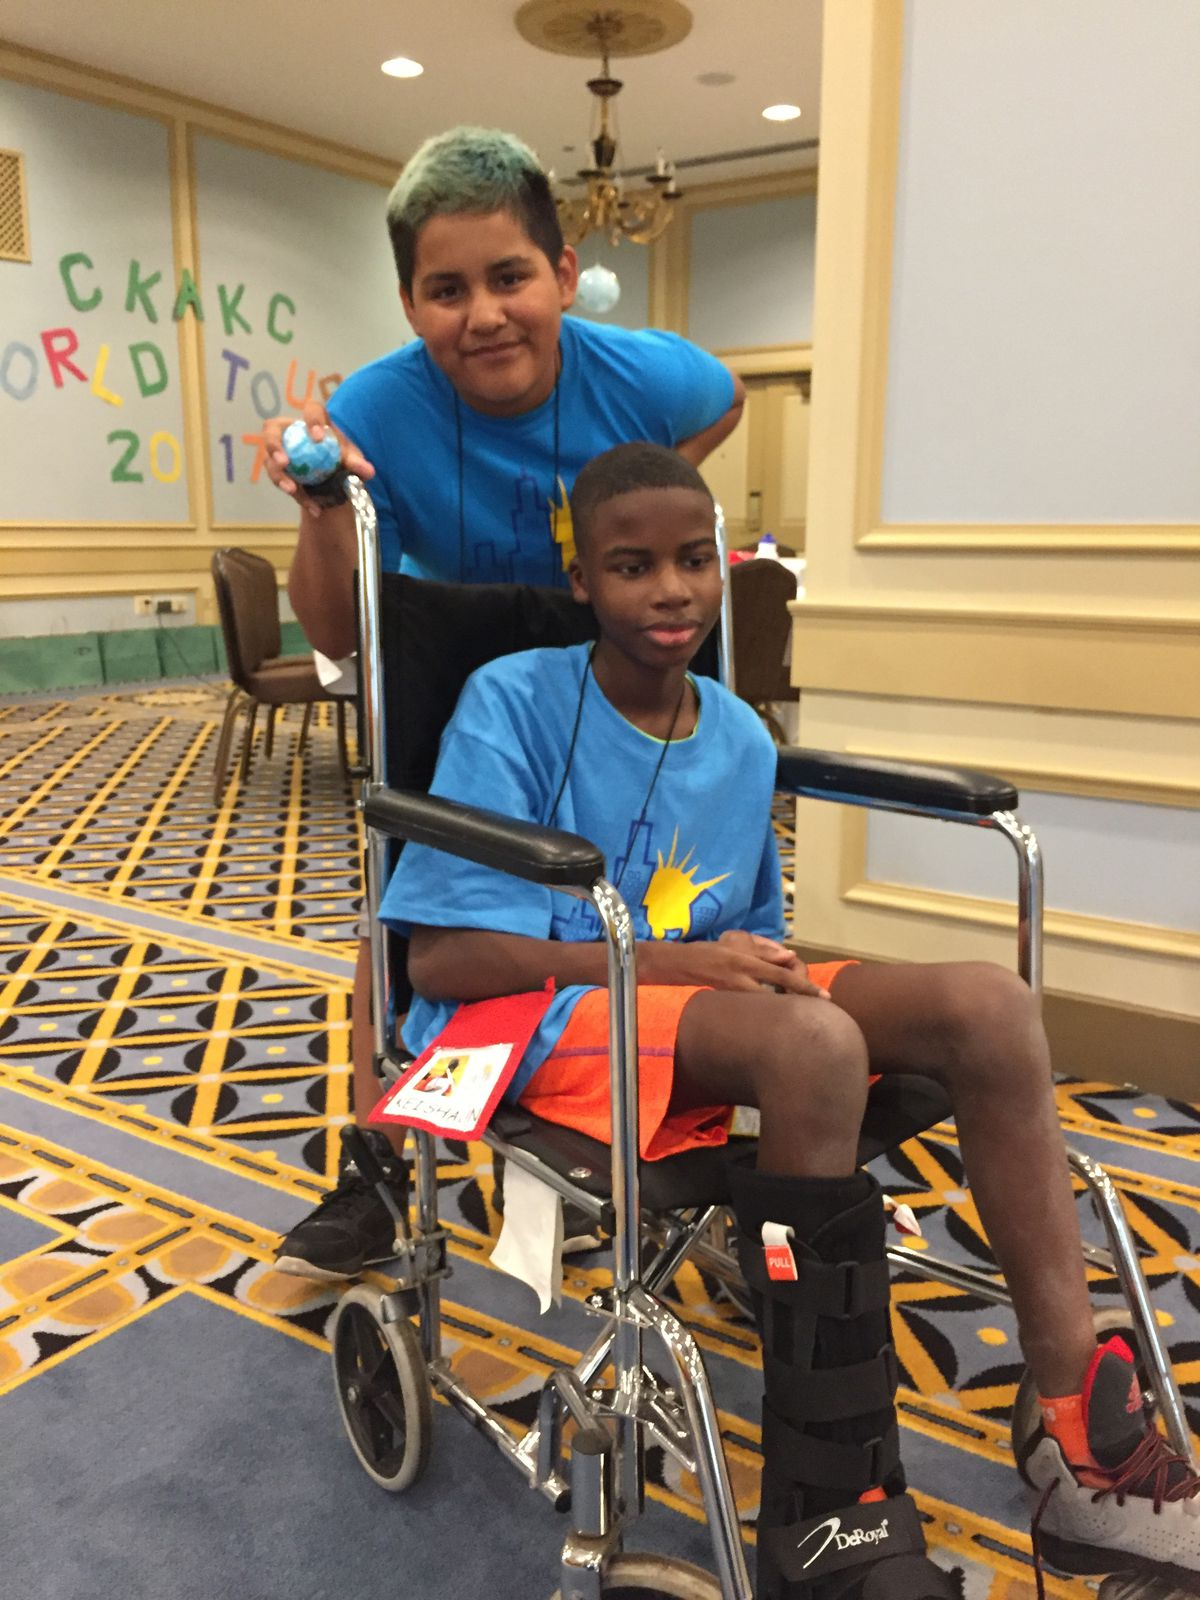 Andres Diaz and Kei'Shaun Hardaway (in chair), both 13, are having fun at Camp Kids Are Kids Chicago, a summer camp for young cancer survivors held this week at the Palmer House Hilton. | Neil Steinberg/Sun-Times